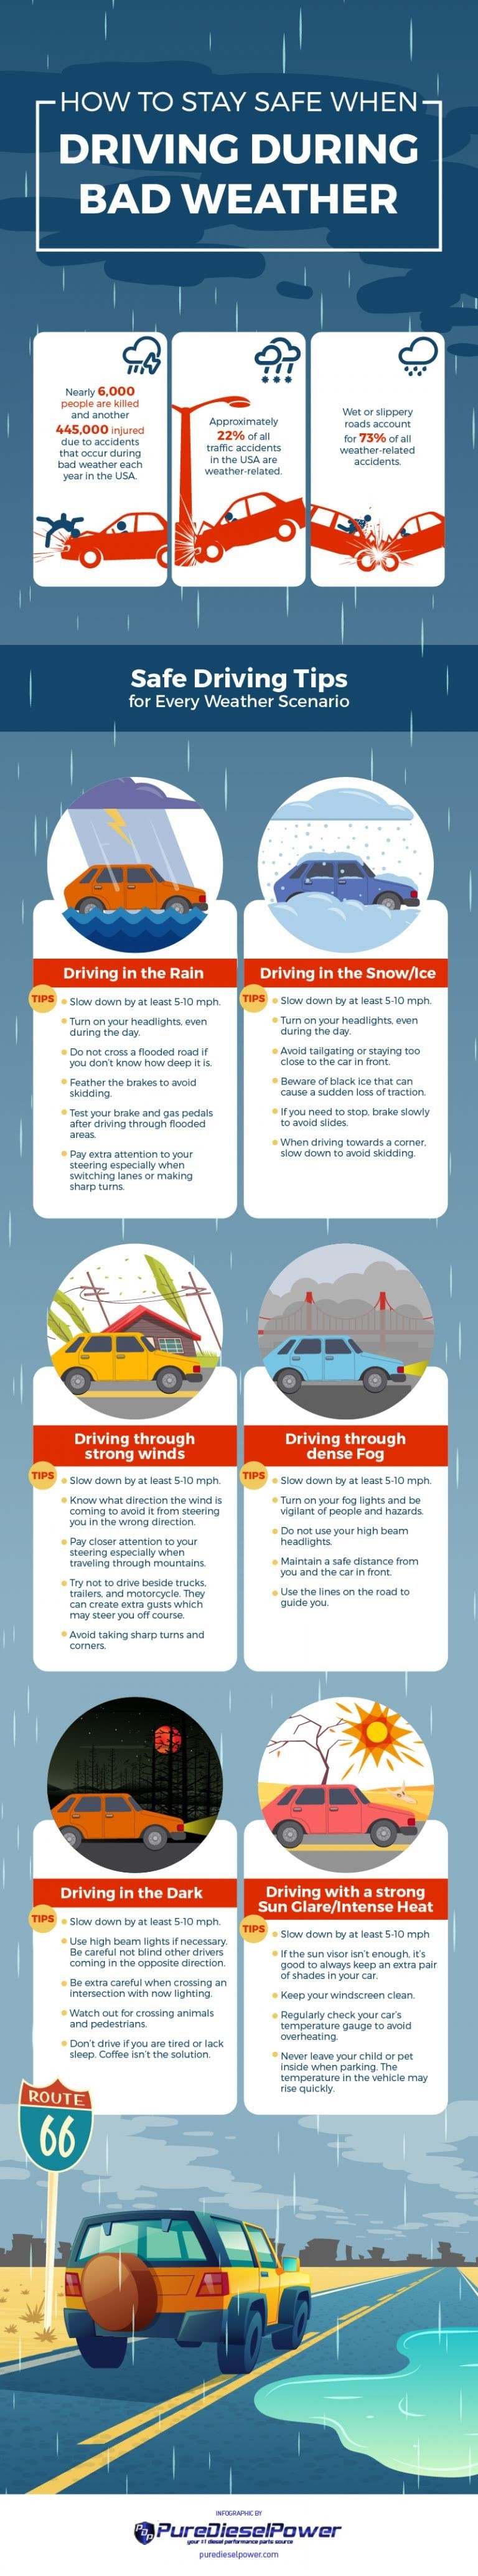 How to Stay Safe When Driving During Bad Weather #infographic